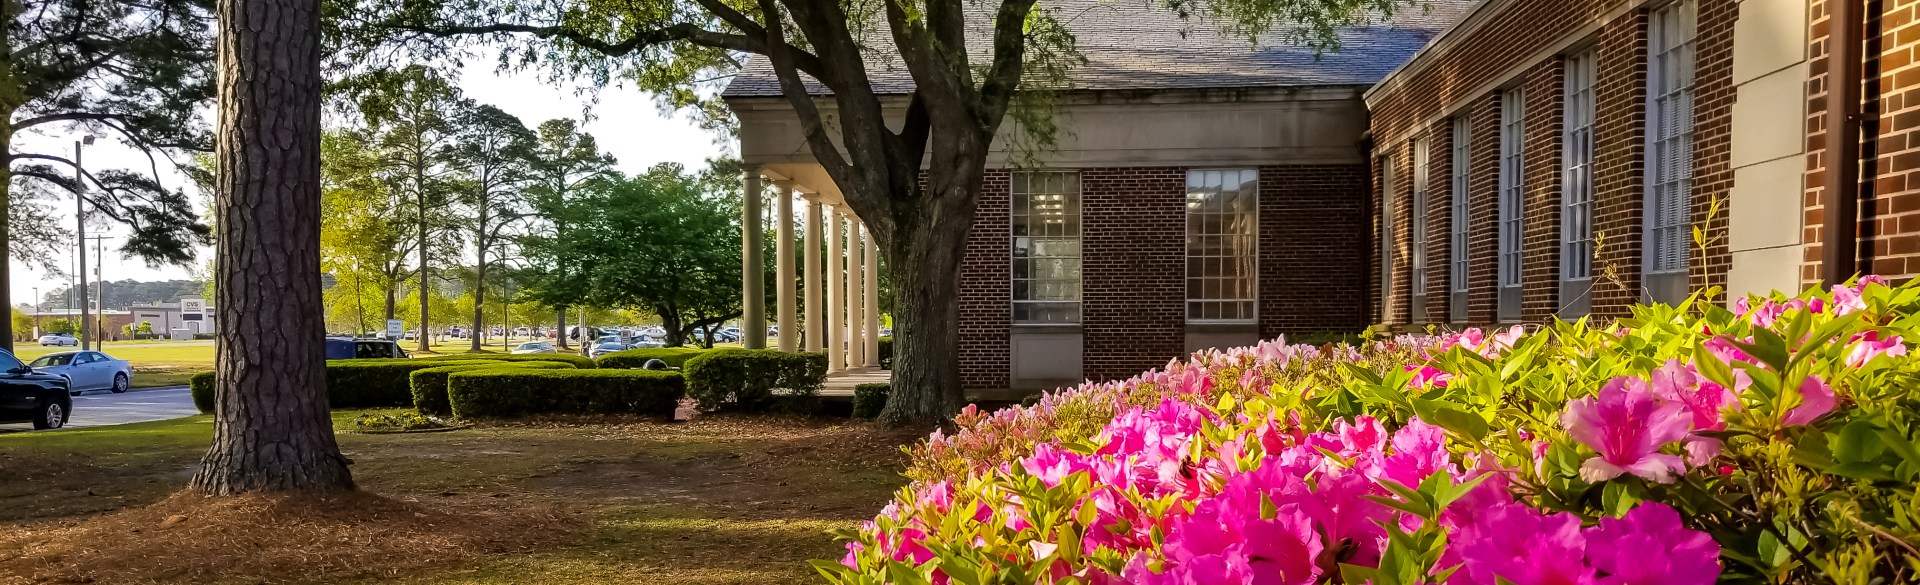 Azaleas bloom in front of the Vernon E. White Building.